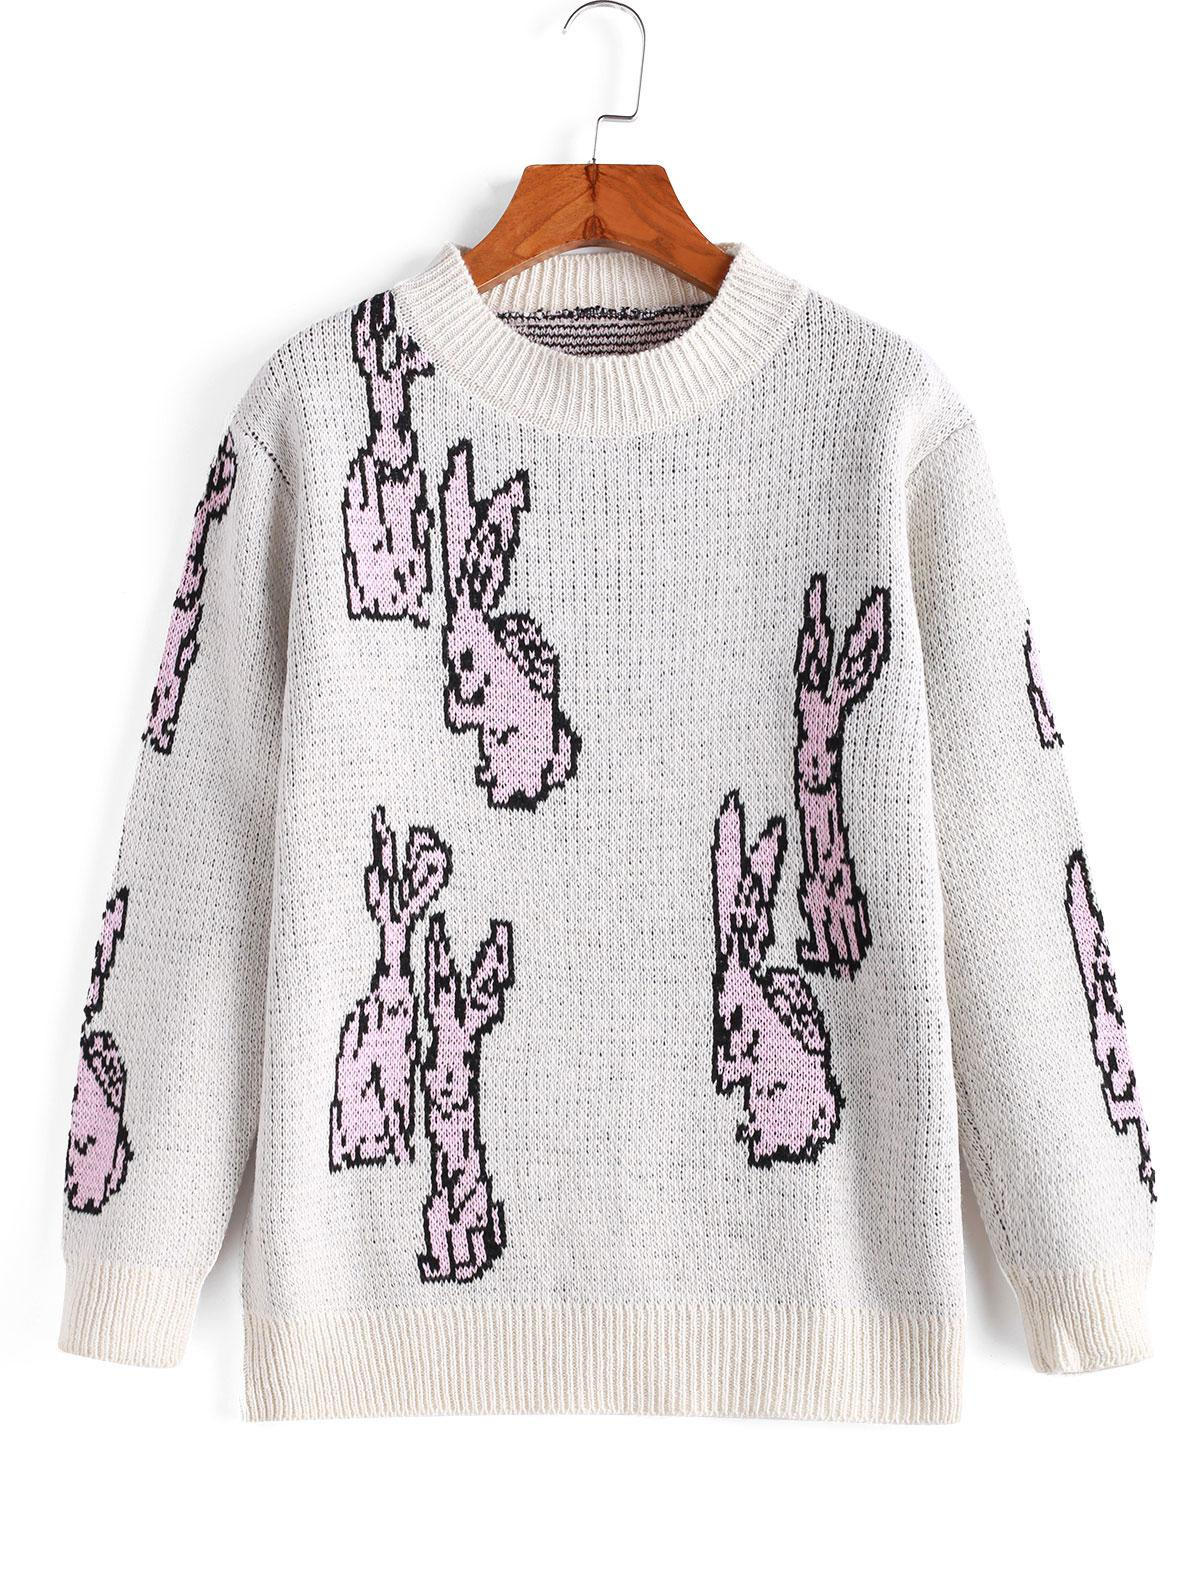 Funny Mock Neck Rabbit Graphic Sweater